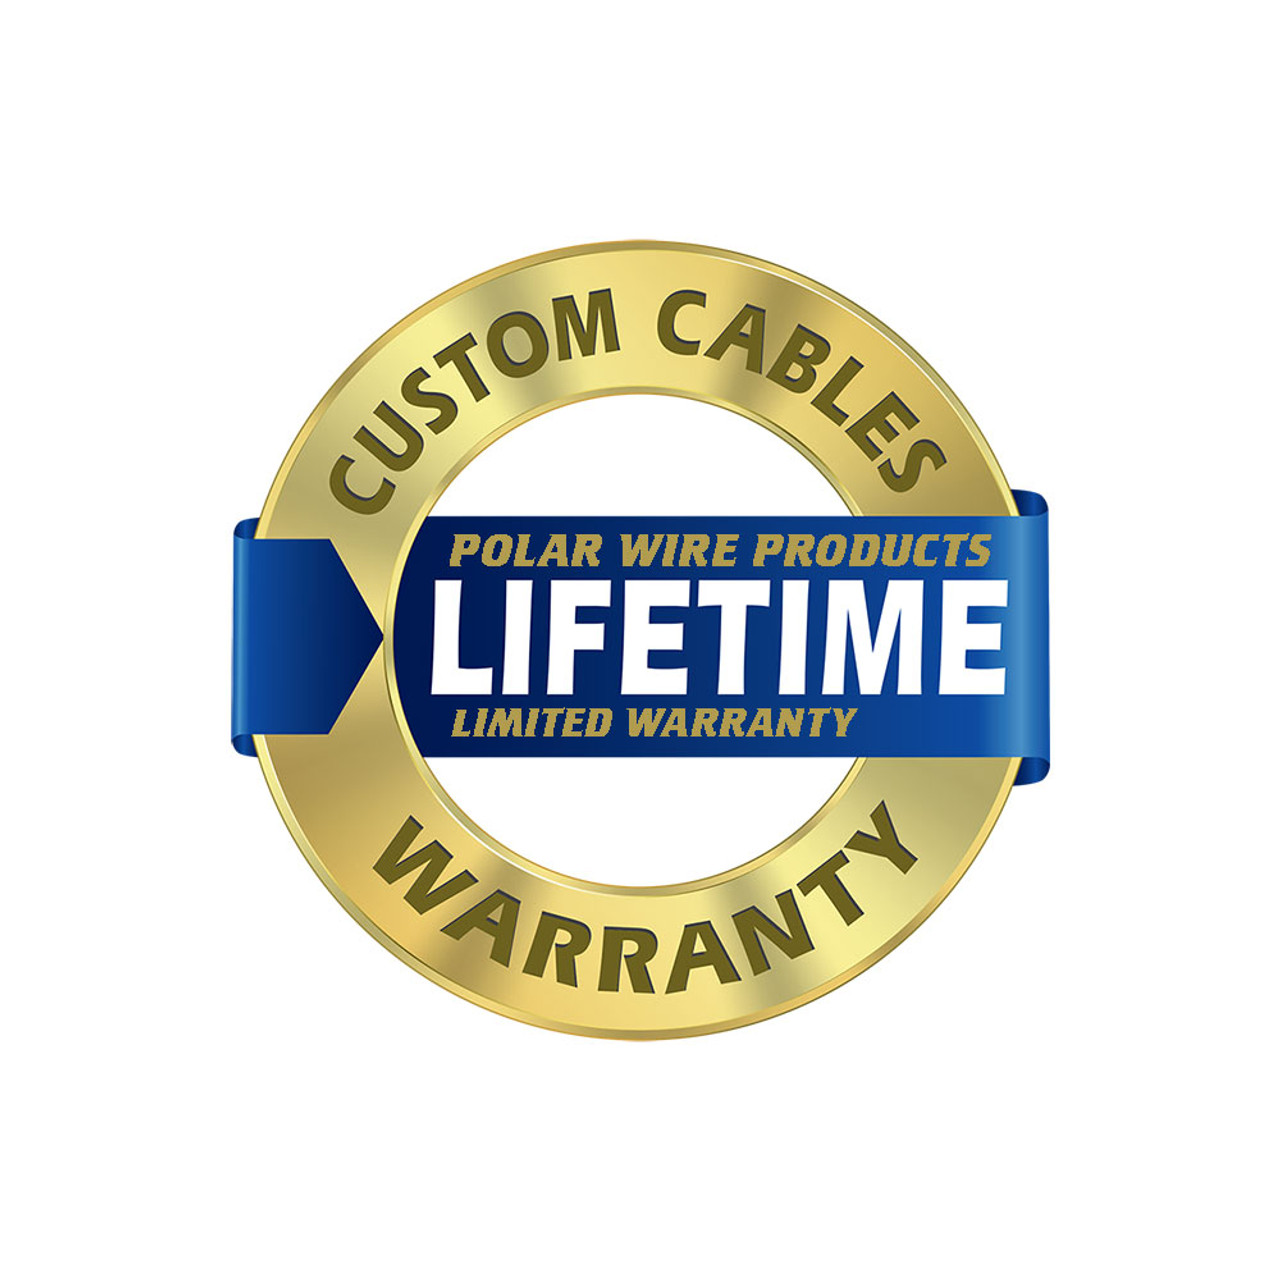 Polar Wire Arctic Superflex Blue Jumper Cable Adapters are covered by our LIFETIME limited warranty!